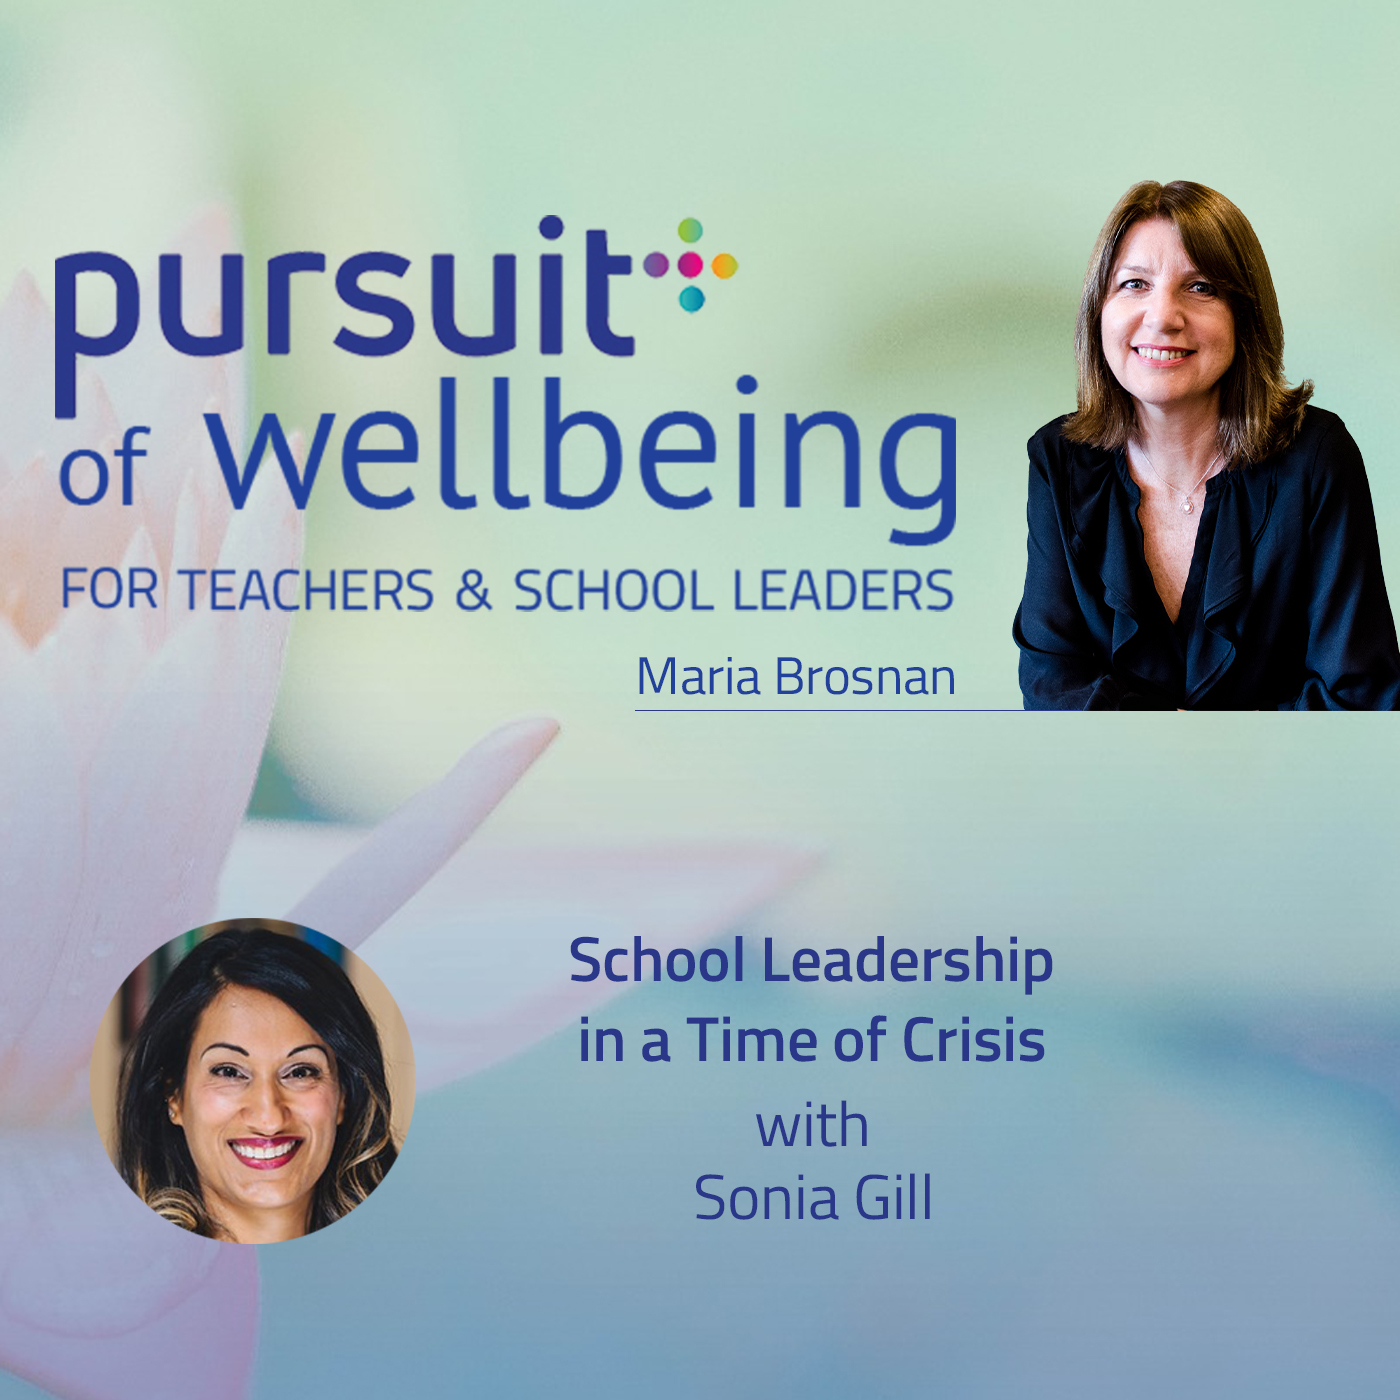 School Leadership in a Time of Crisis with Sonia Gill